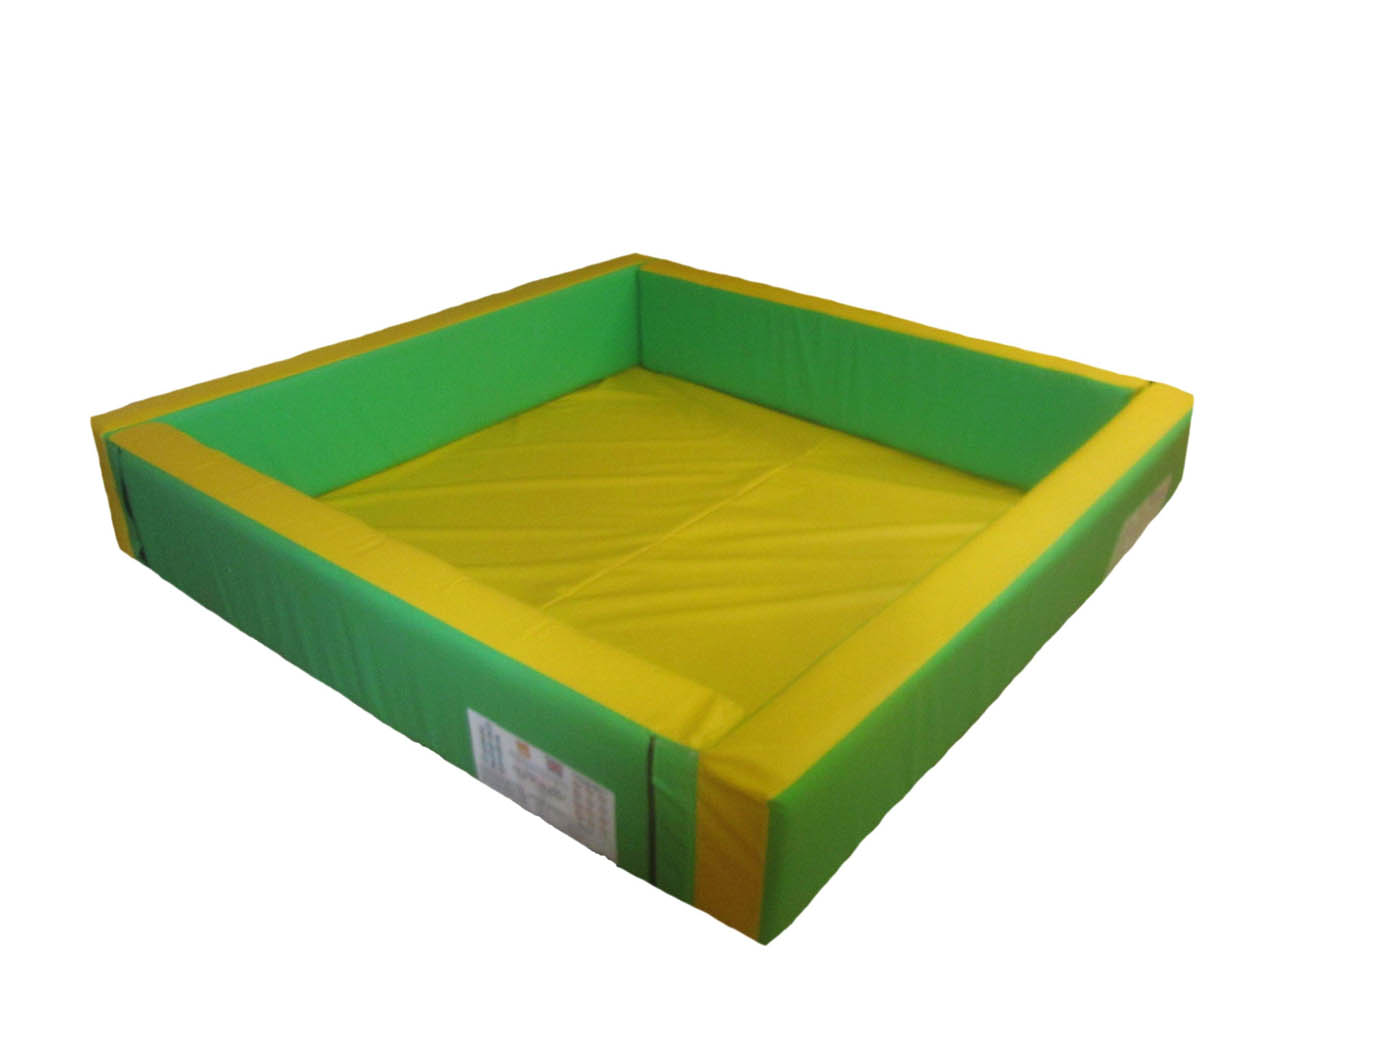 Commercial Toddler Velcro Ball Pond for Sale